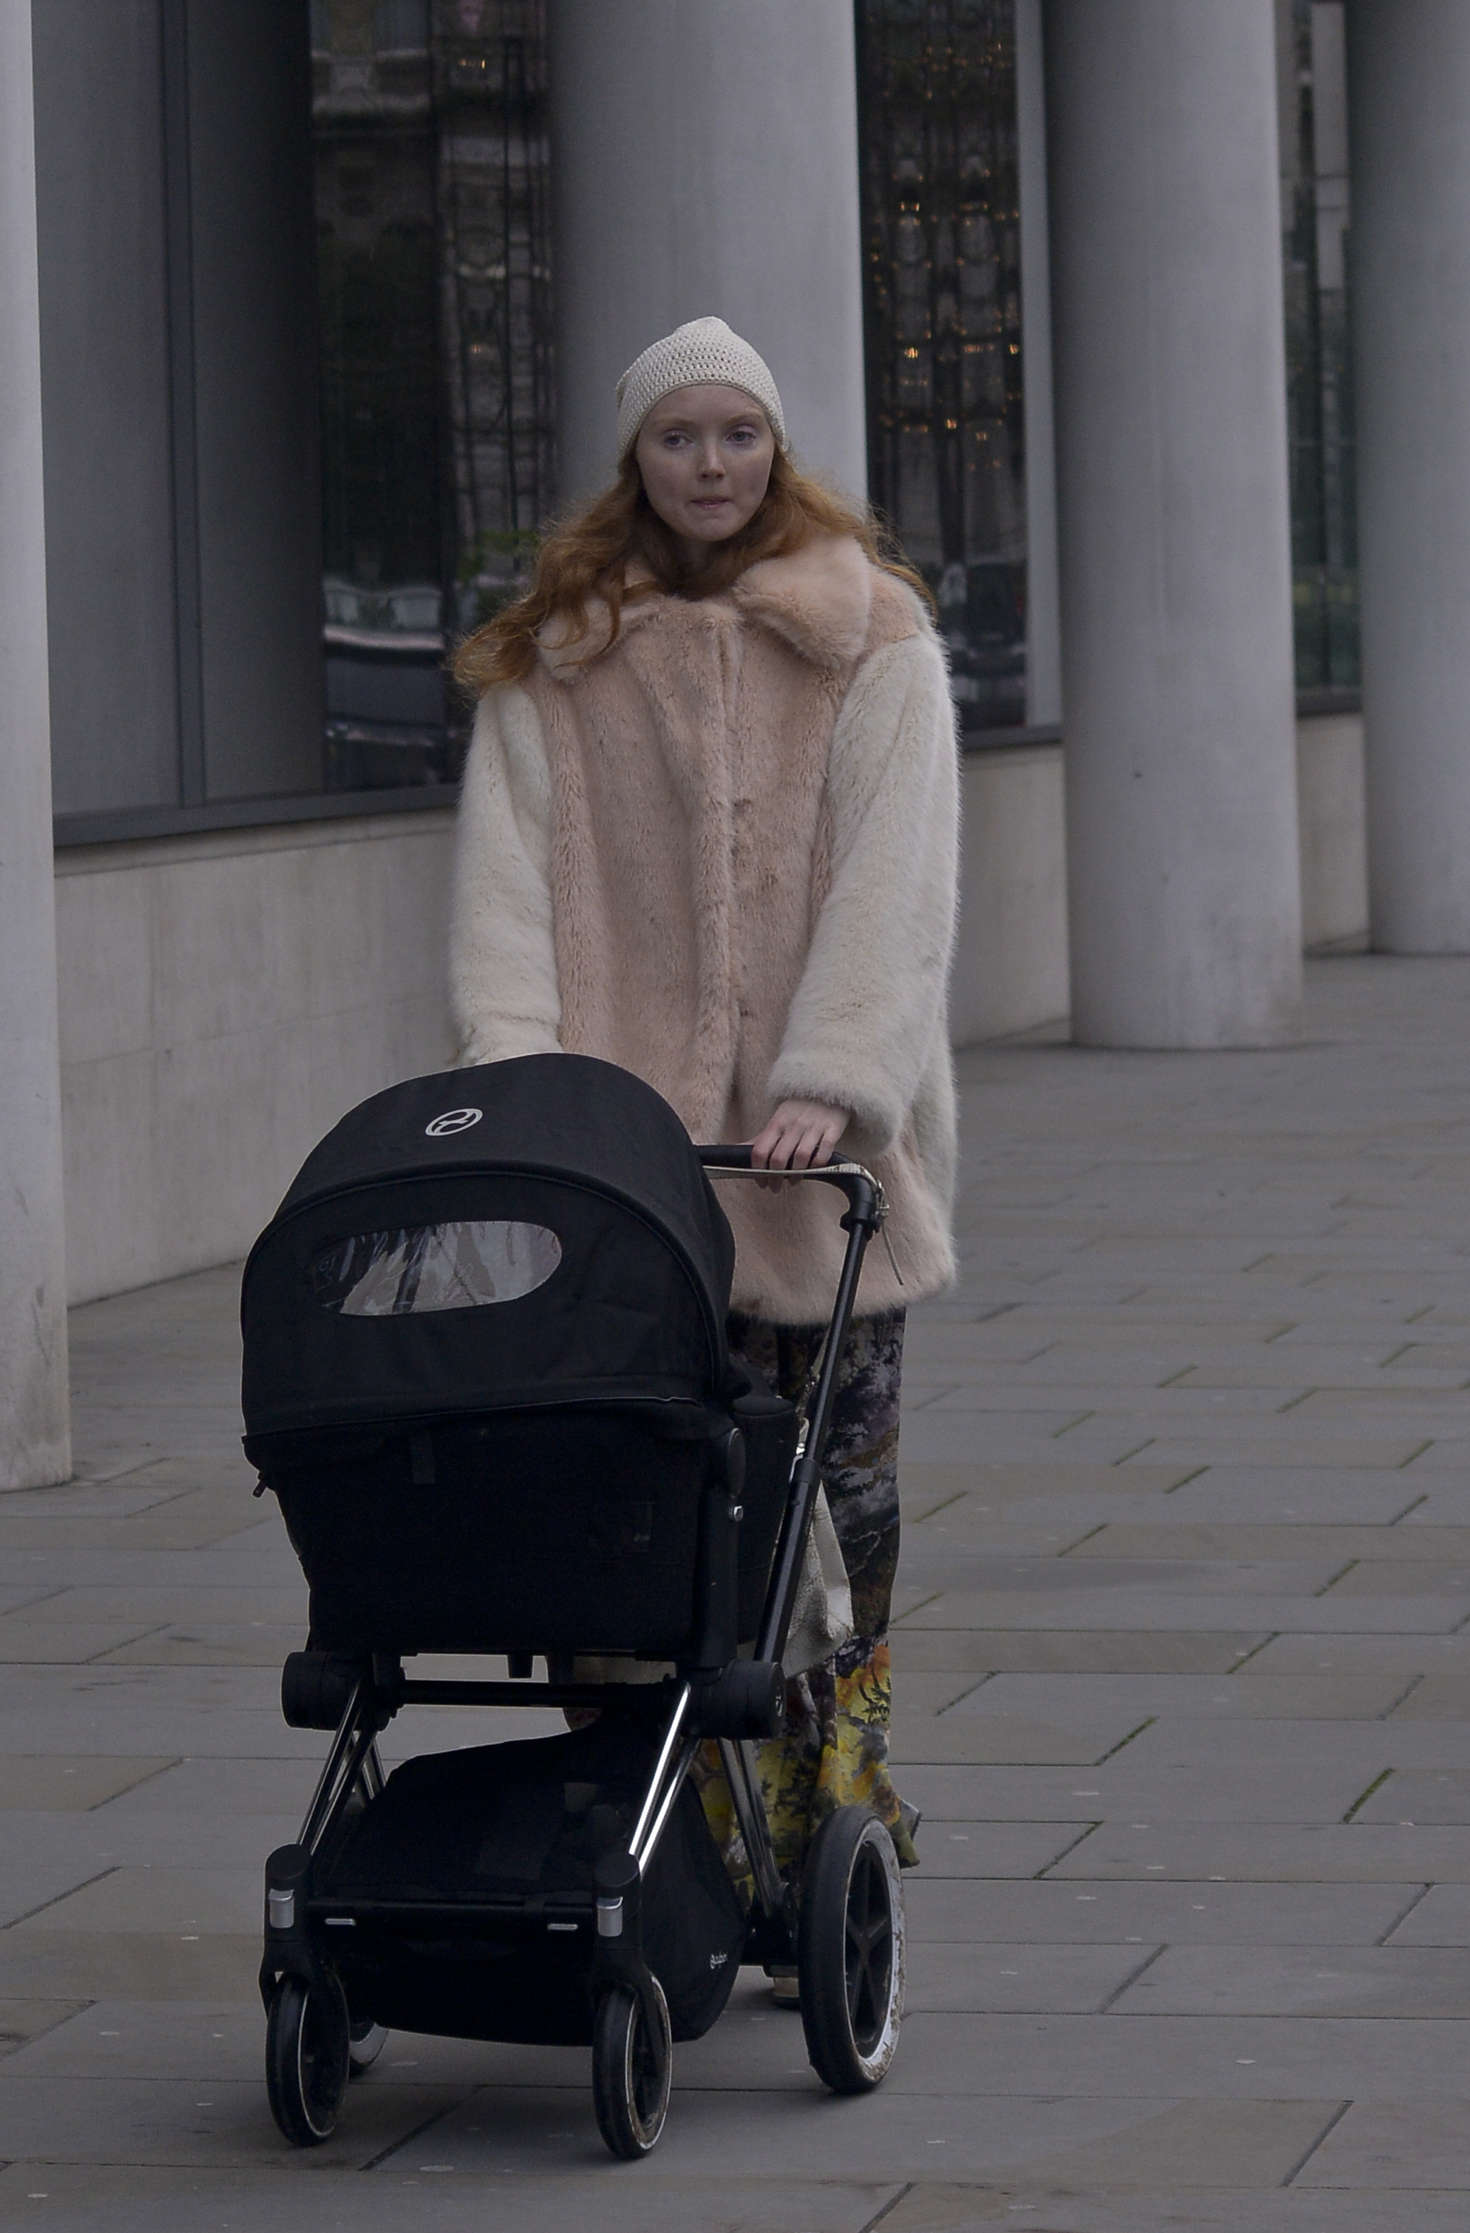 Lily Cole Walking her new baby in London